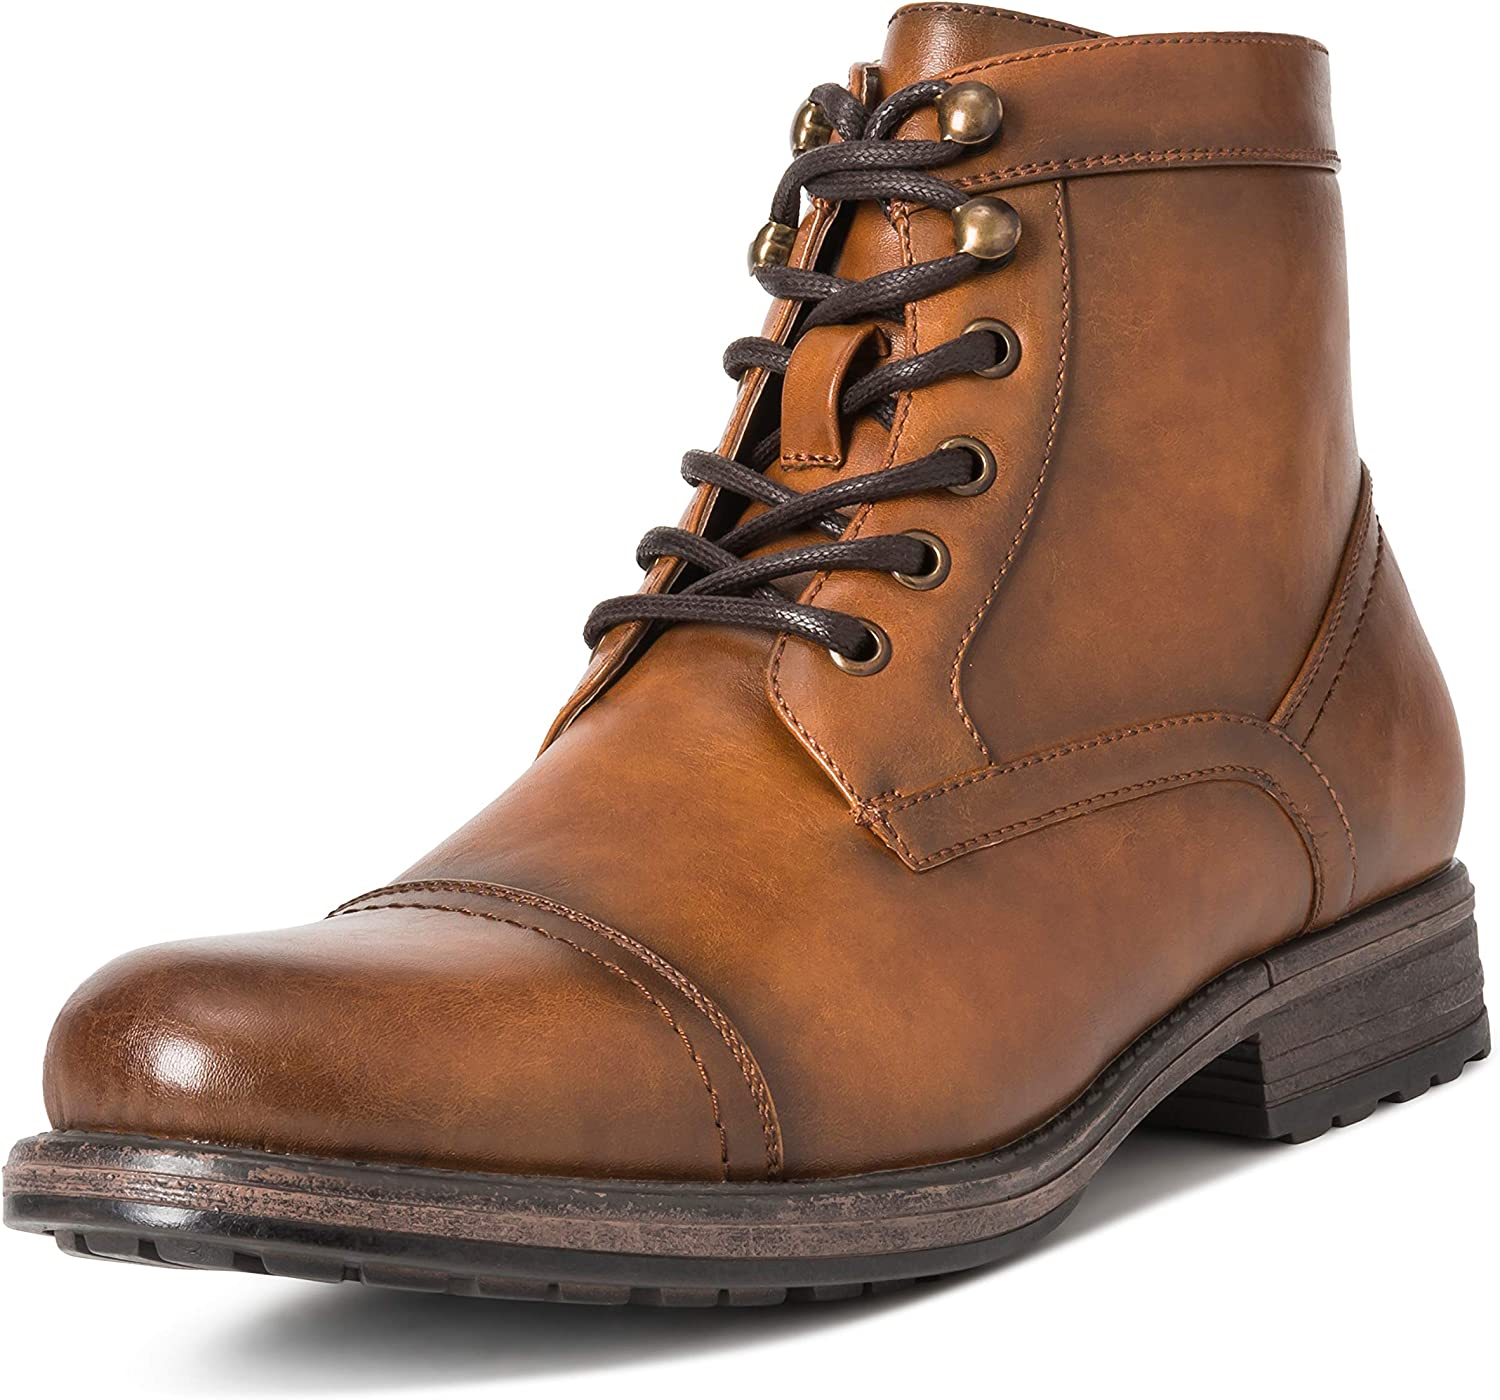 Mens Queensbery Albert Office Smart Work Business Leather Ankle Boots